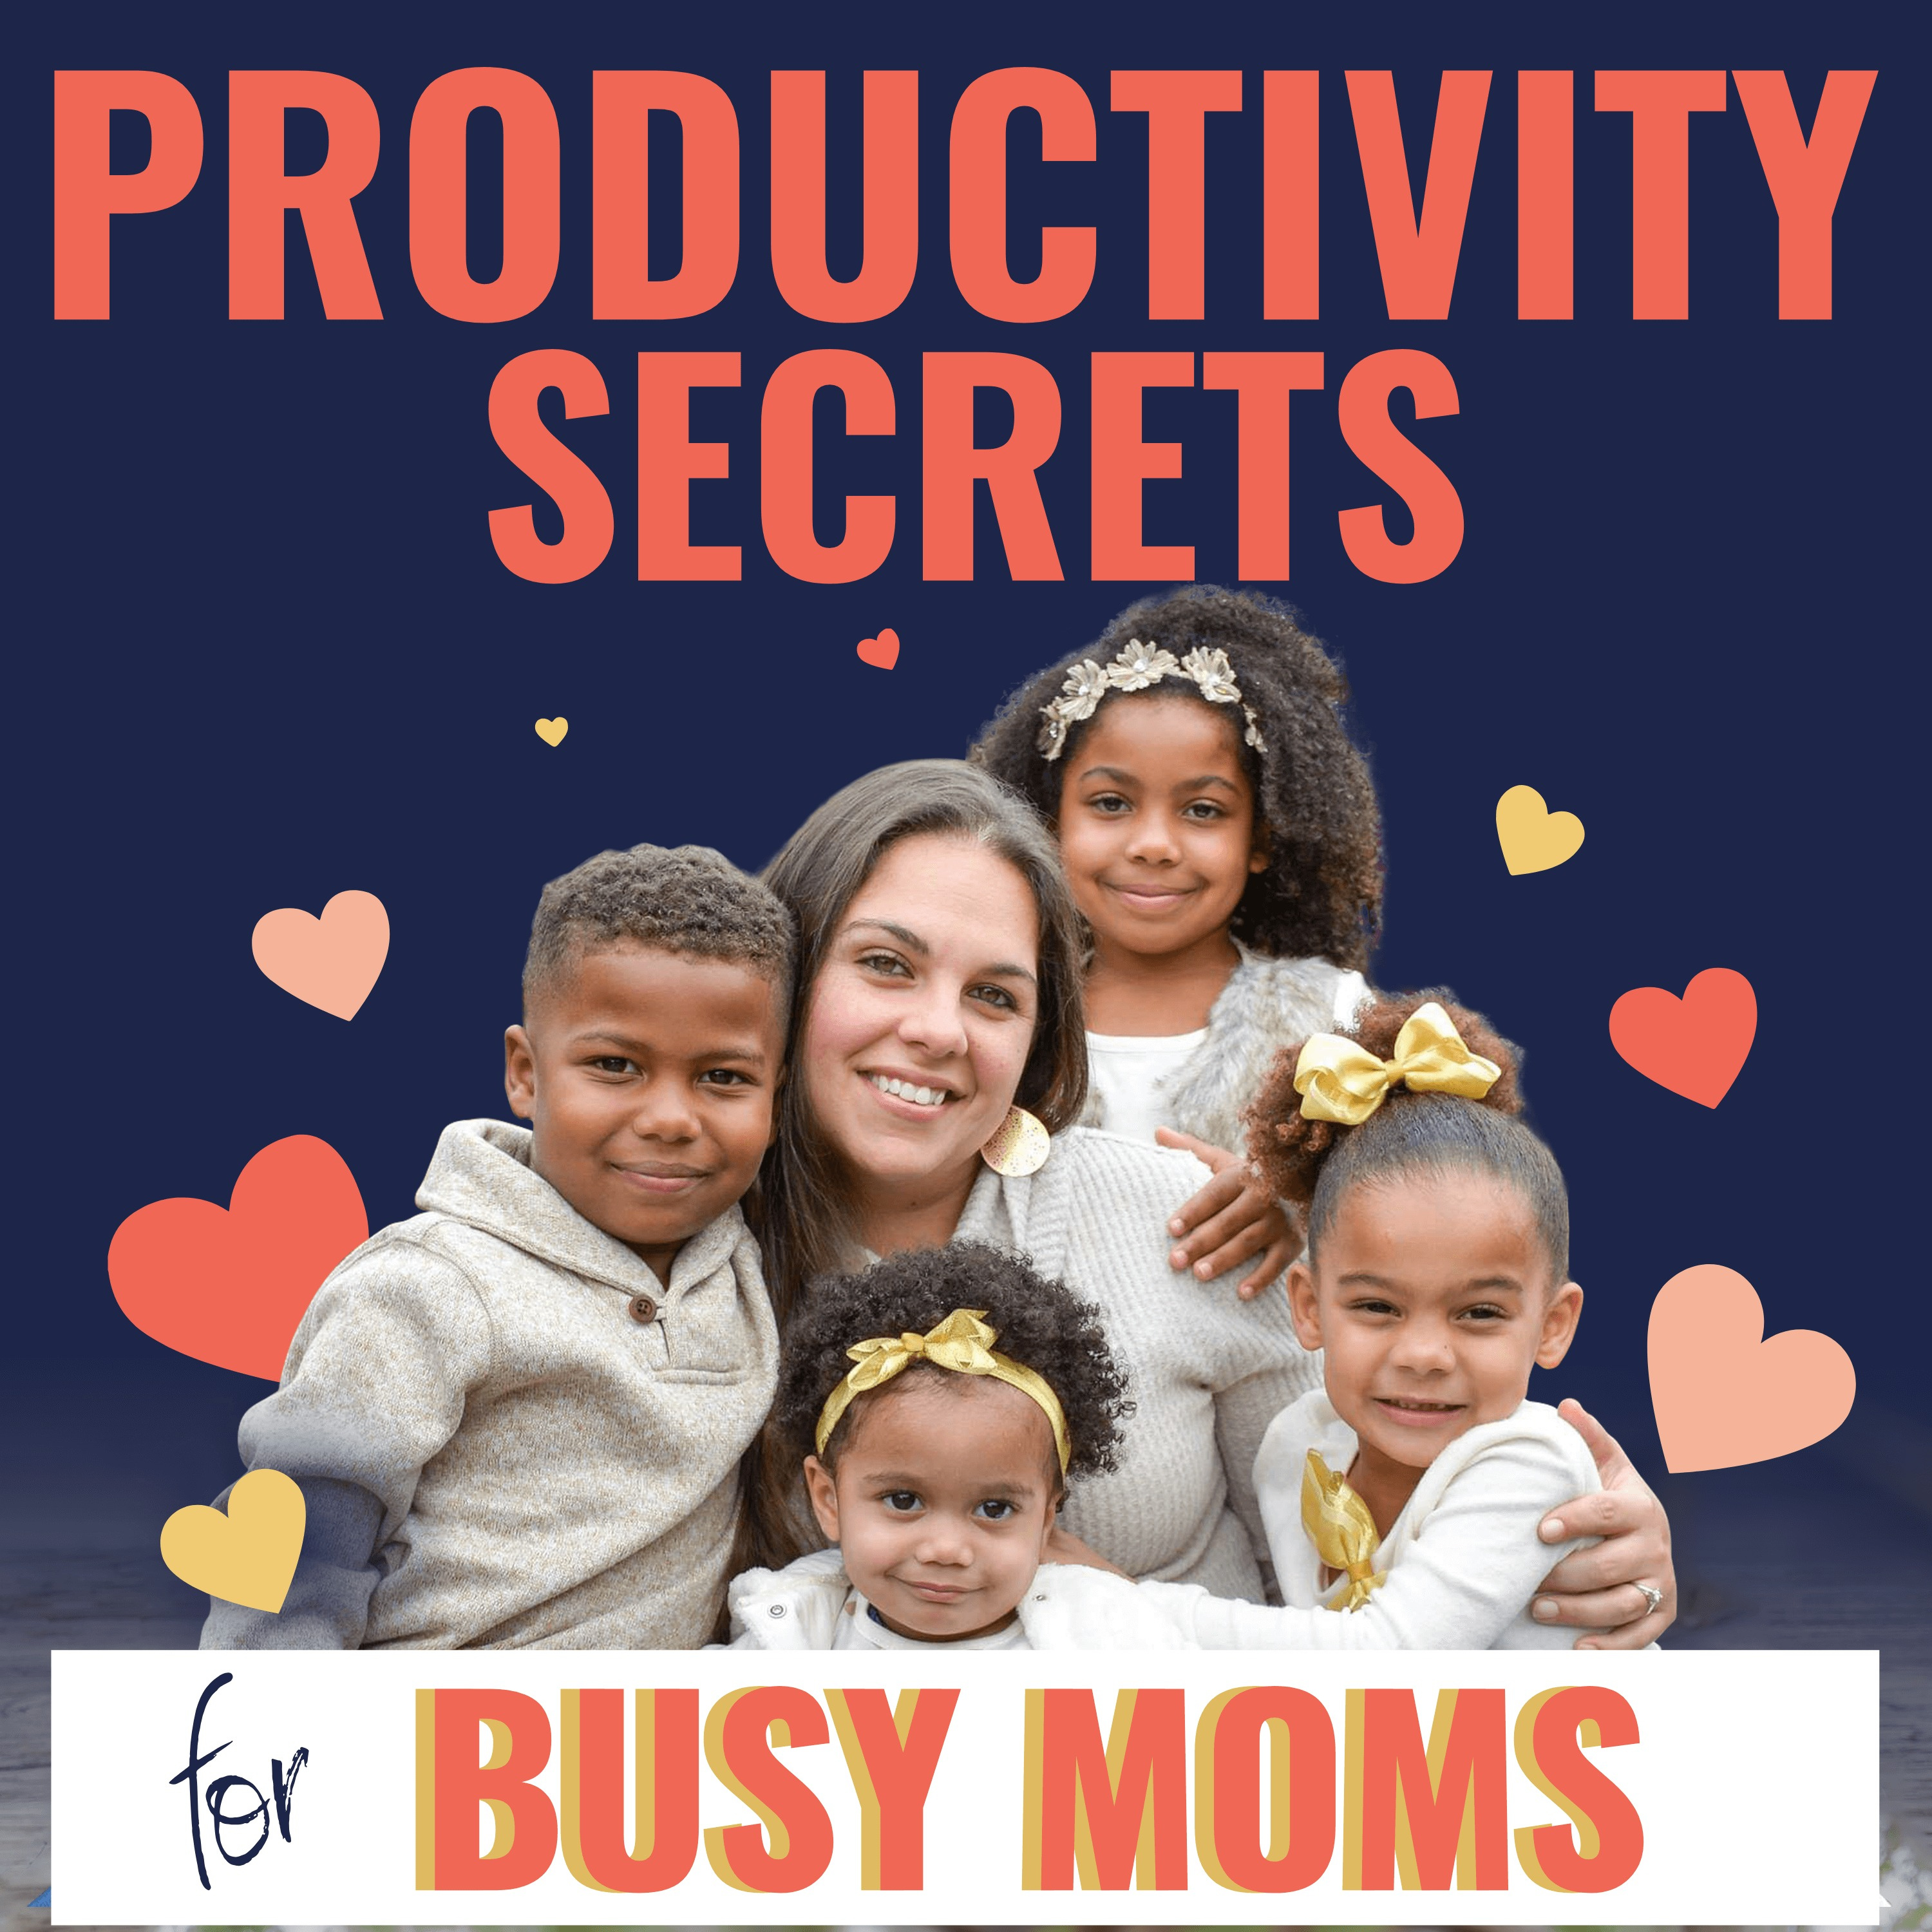 Welcome to Productivity Secrets for Busy Moms